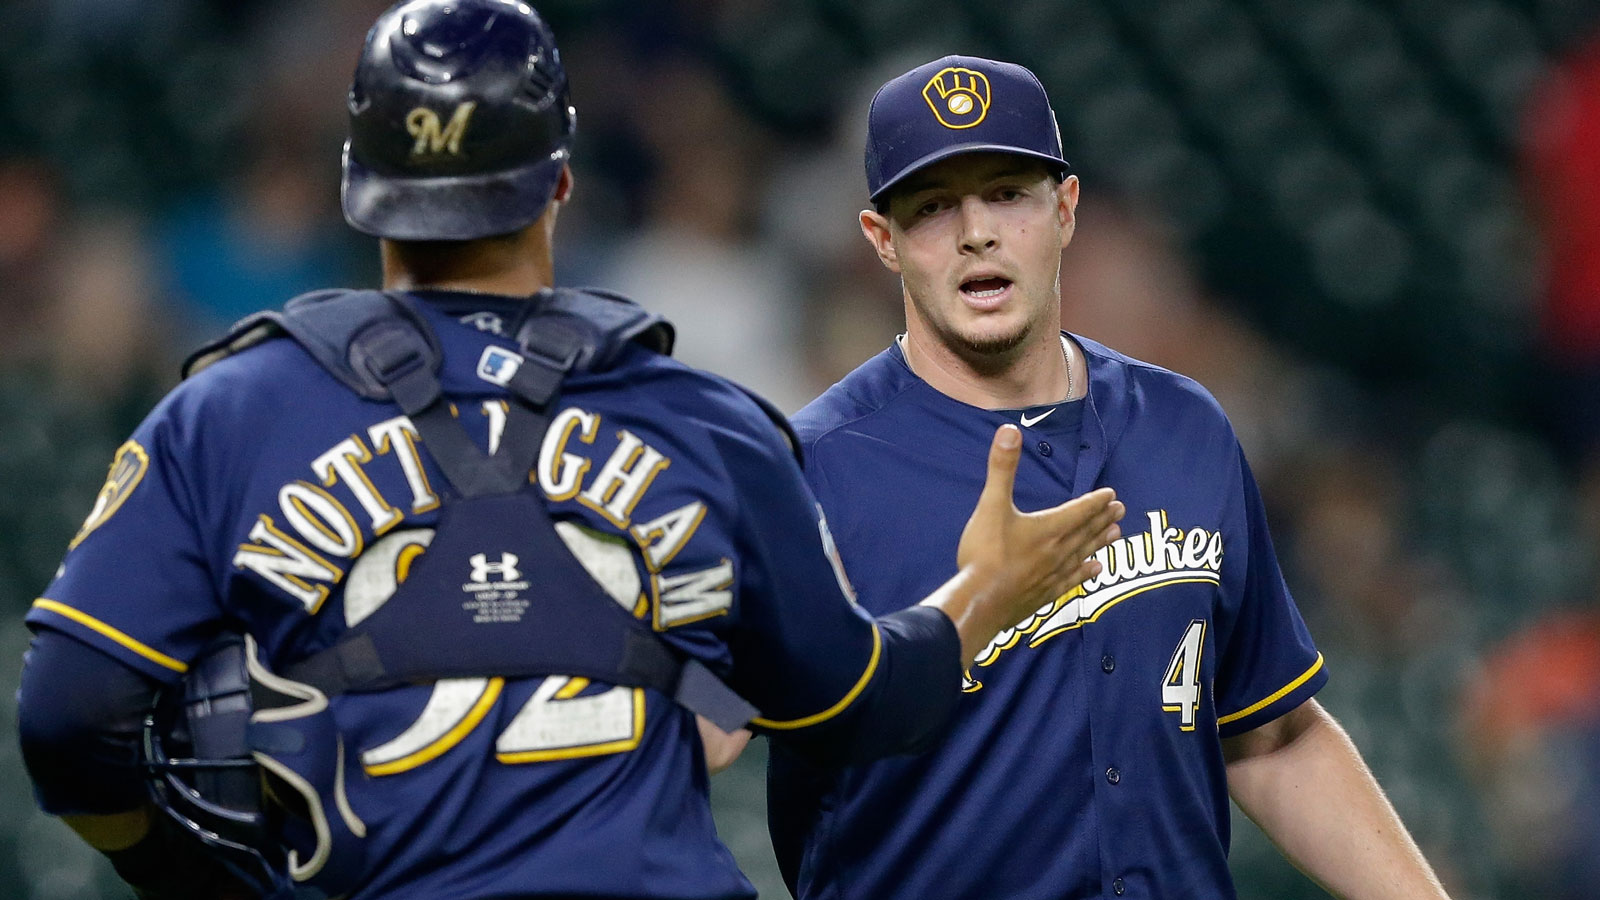 Brewers to recall Knebel from Triple-A